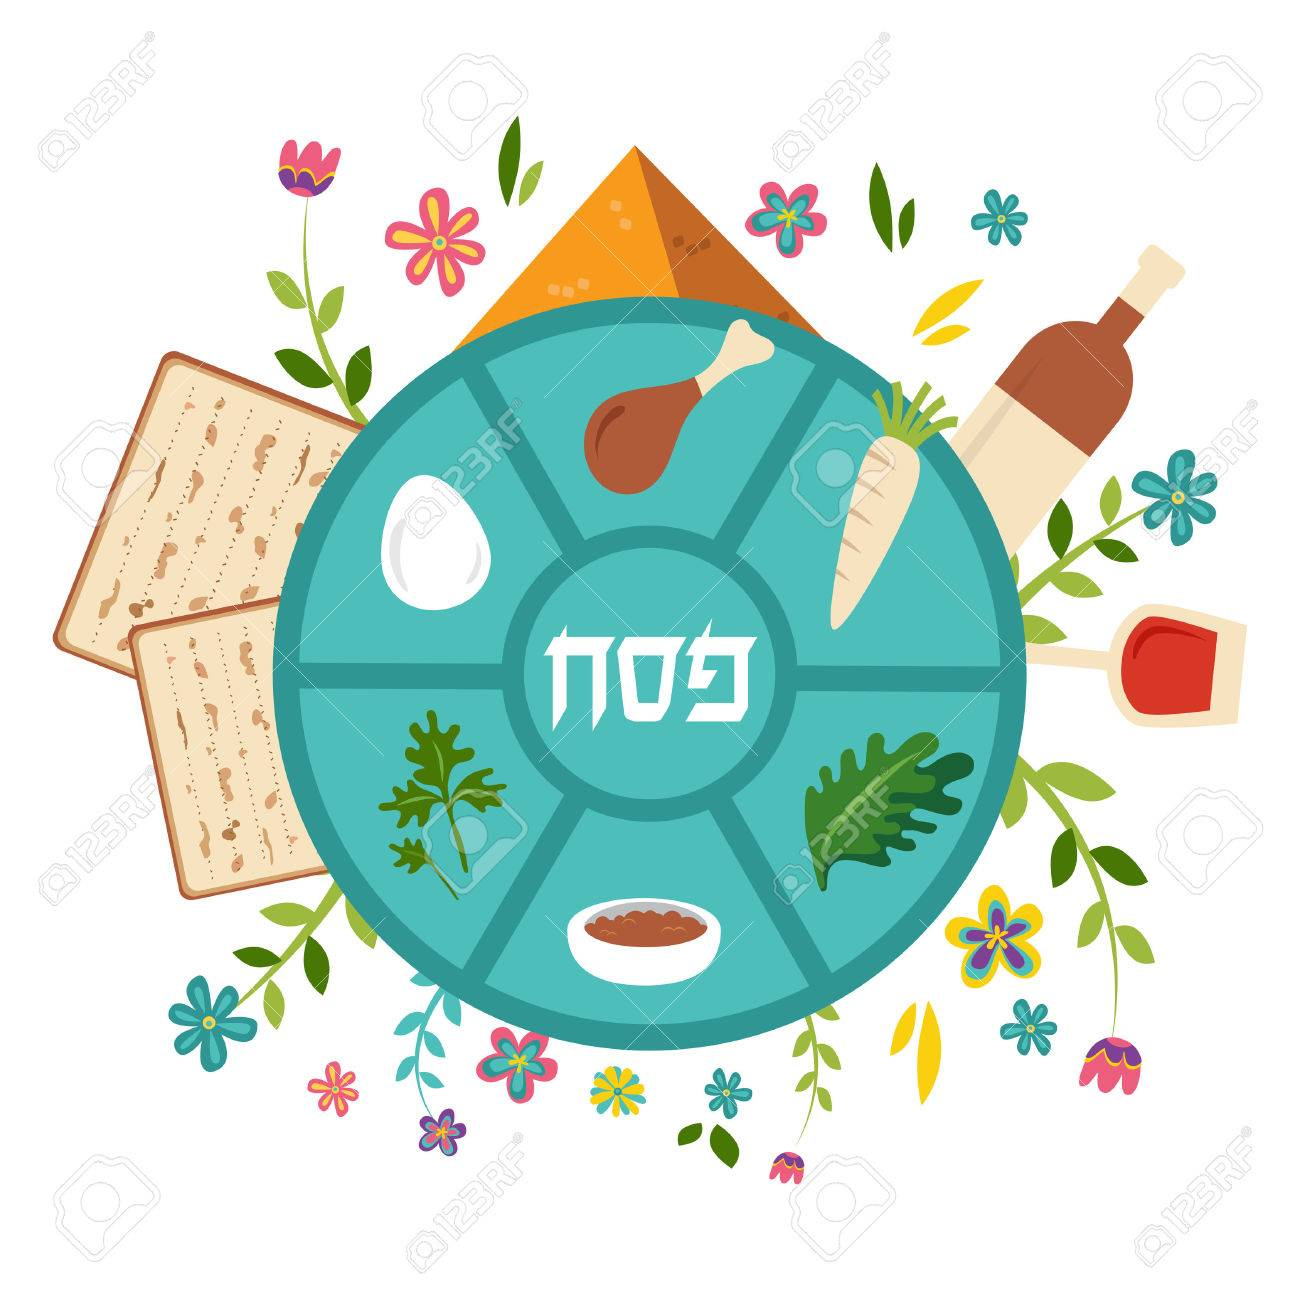 Passover seder plate with floral decoration passover in hebrew passover seder plate with floral decoration passover in hebrew in the middle vector illustration buycottarizona